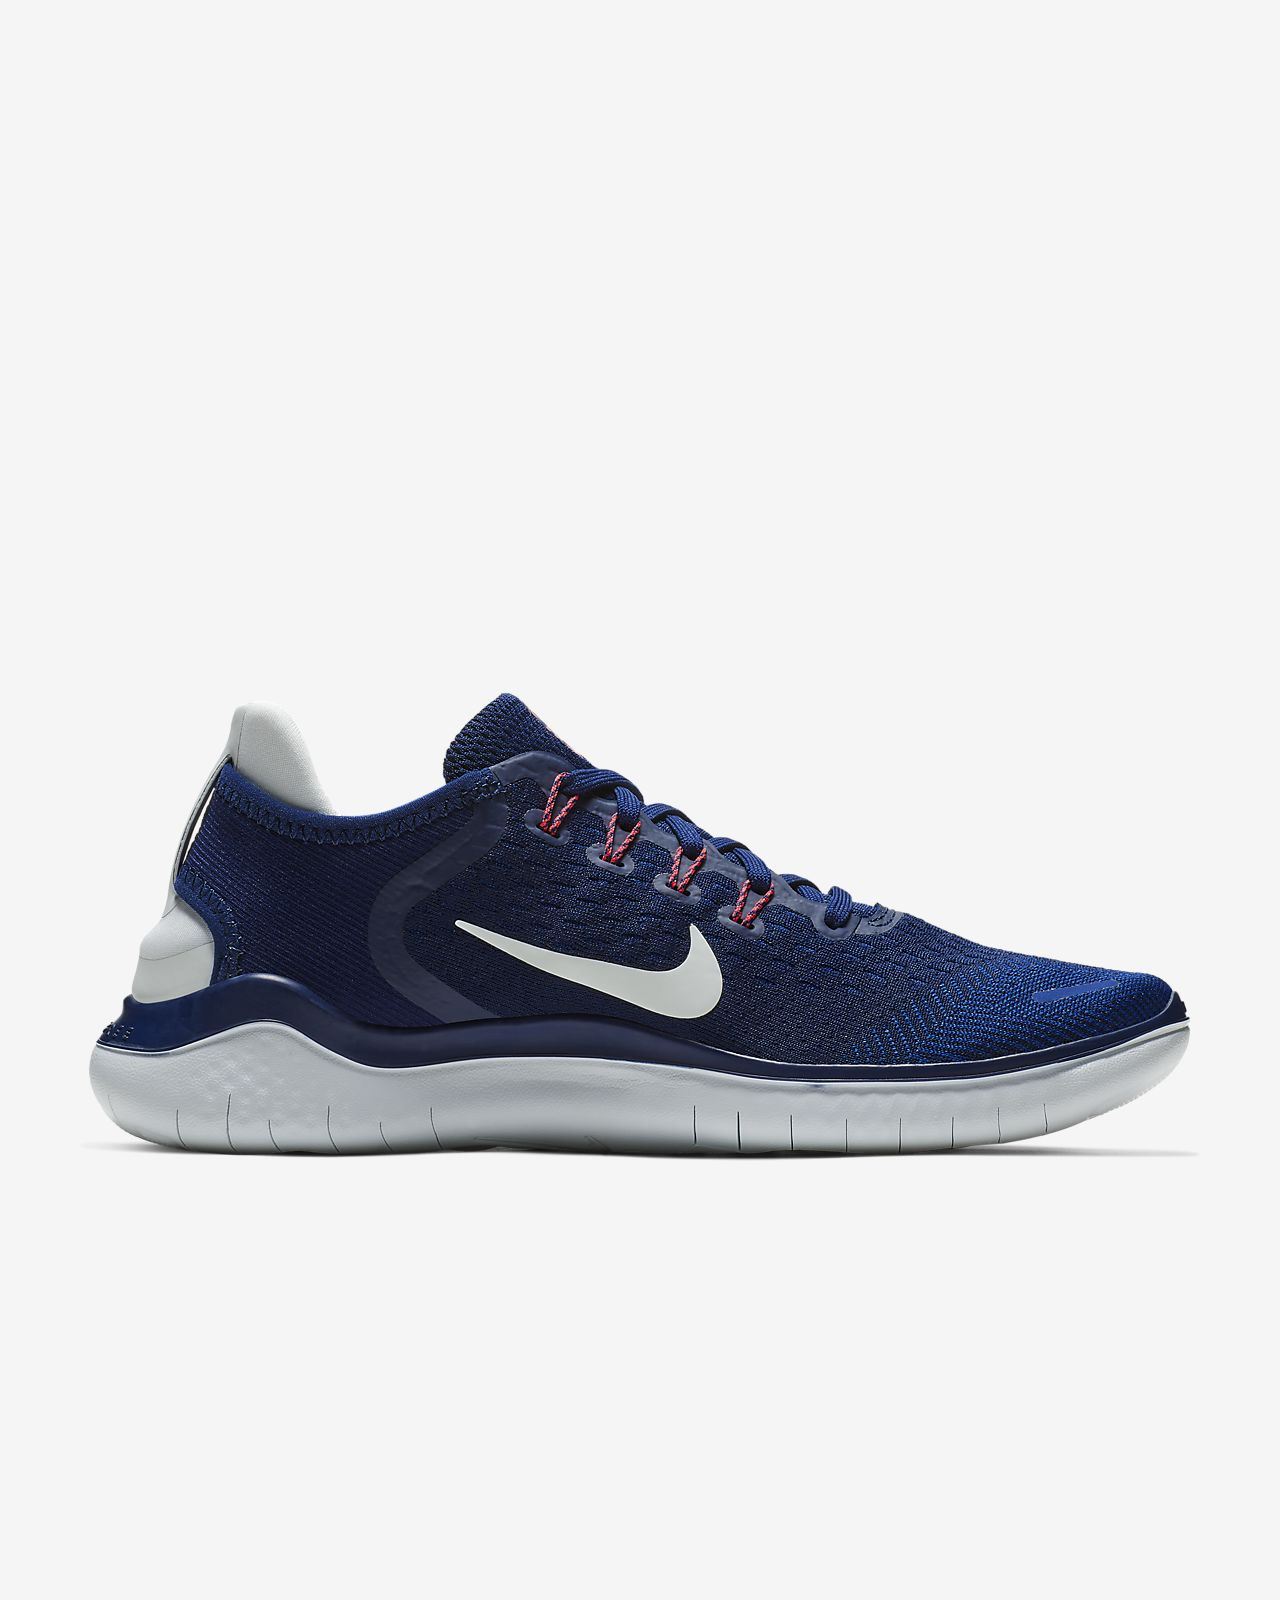 separation shoes b578d 40f04 ... Nike Free RN 2018 Womens Running Shoe